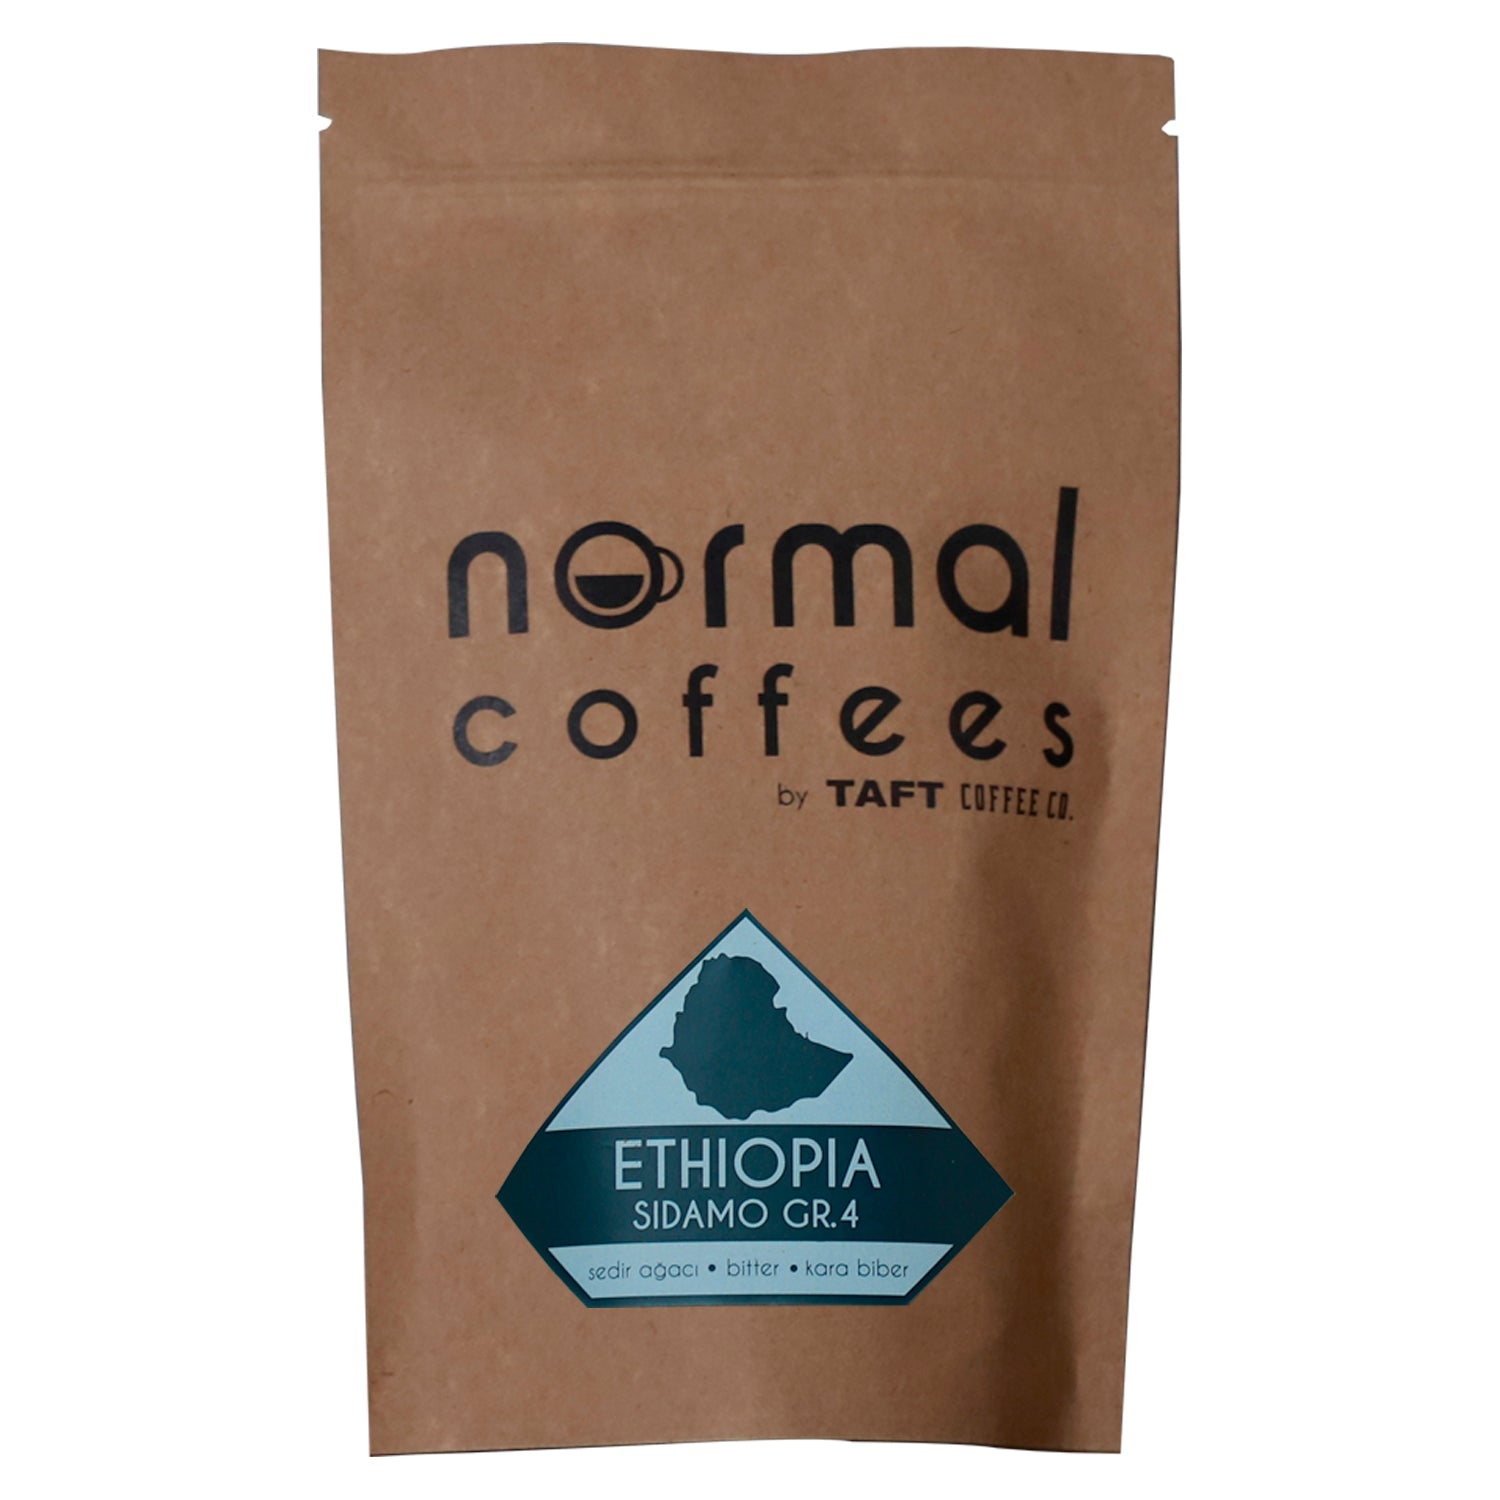 Normal Coffees by TAFT Coffee Co. Etiyopya Sidamo